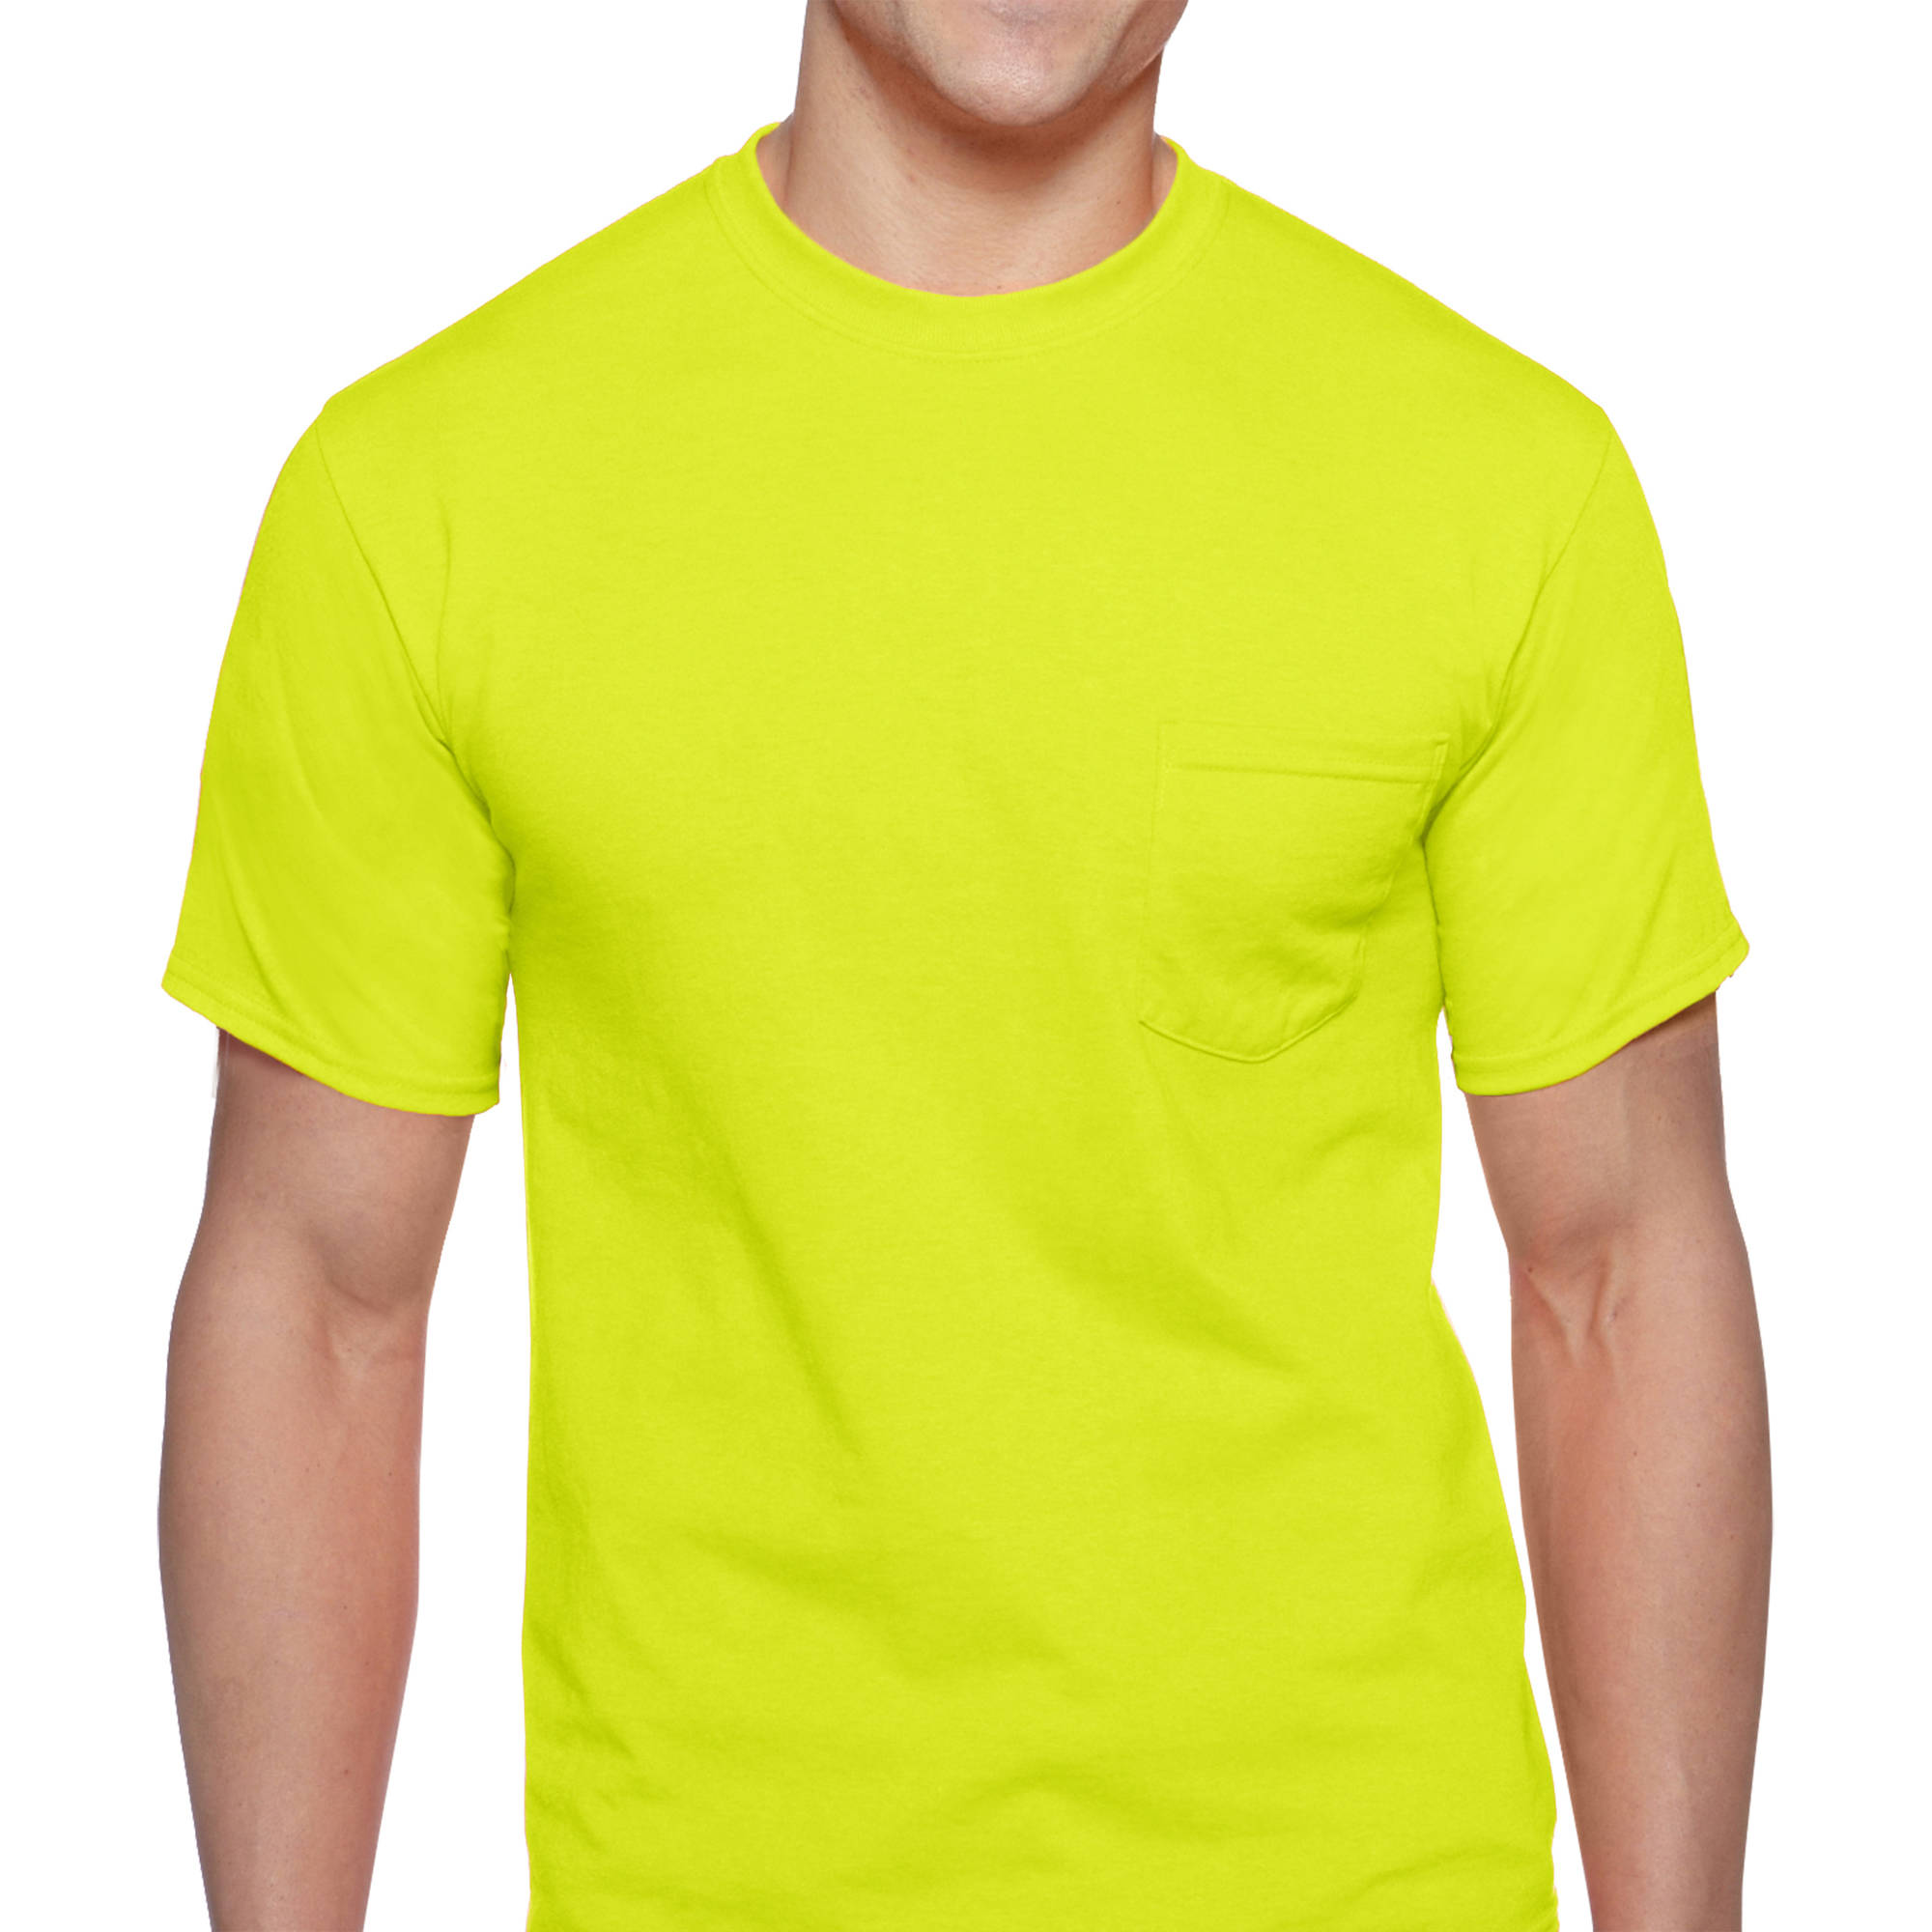 Big Men's Workwear Short Sleeve High Visibility Crew, 2-Pack